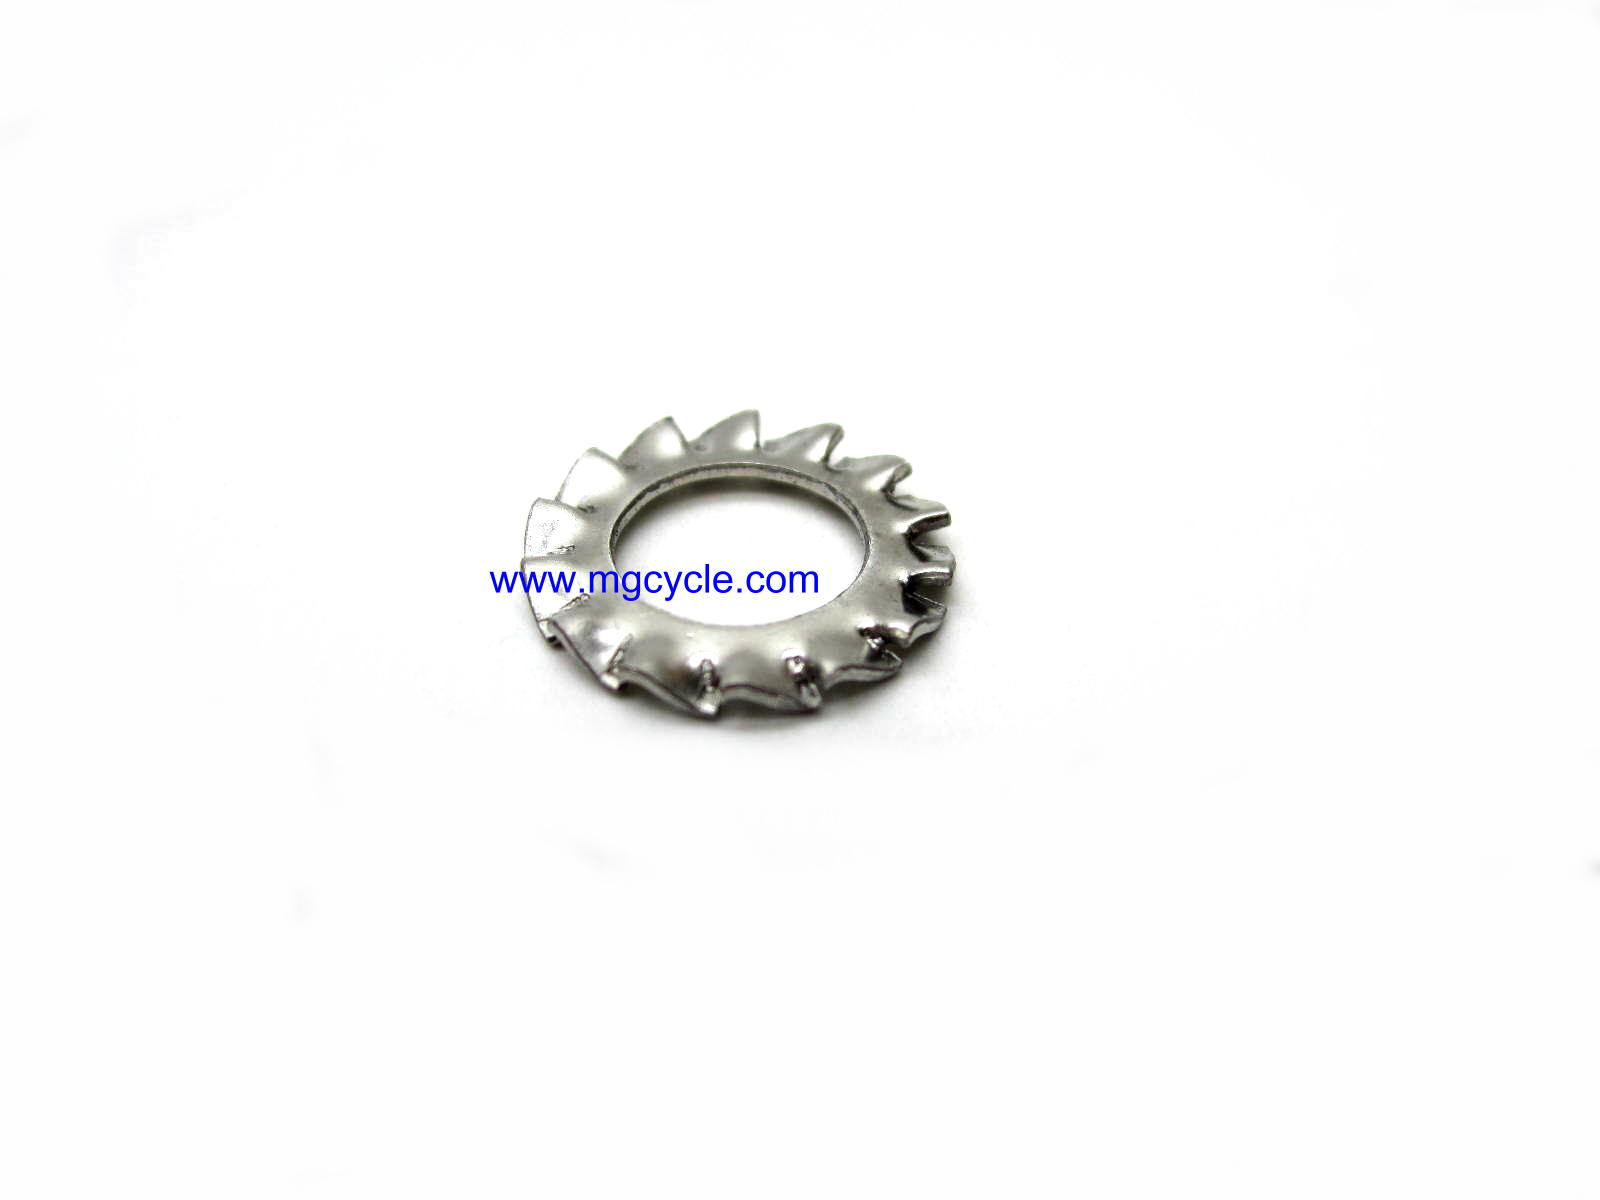 toothed lock washer 8mm